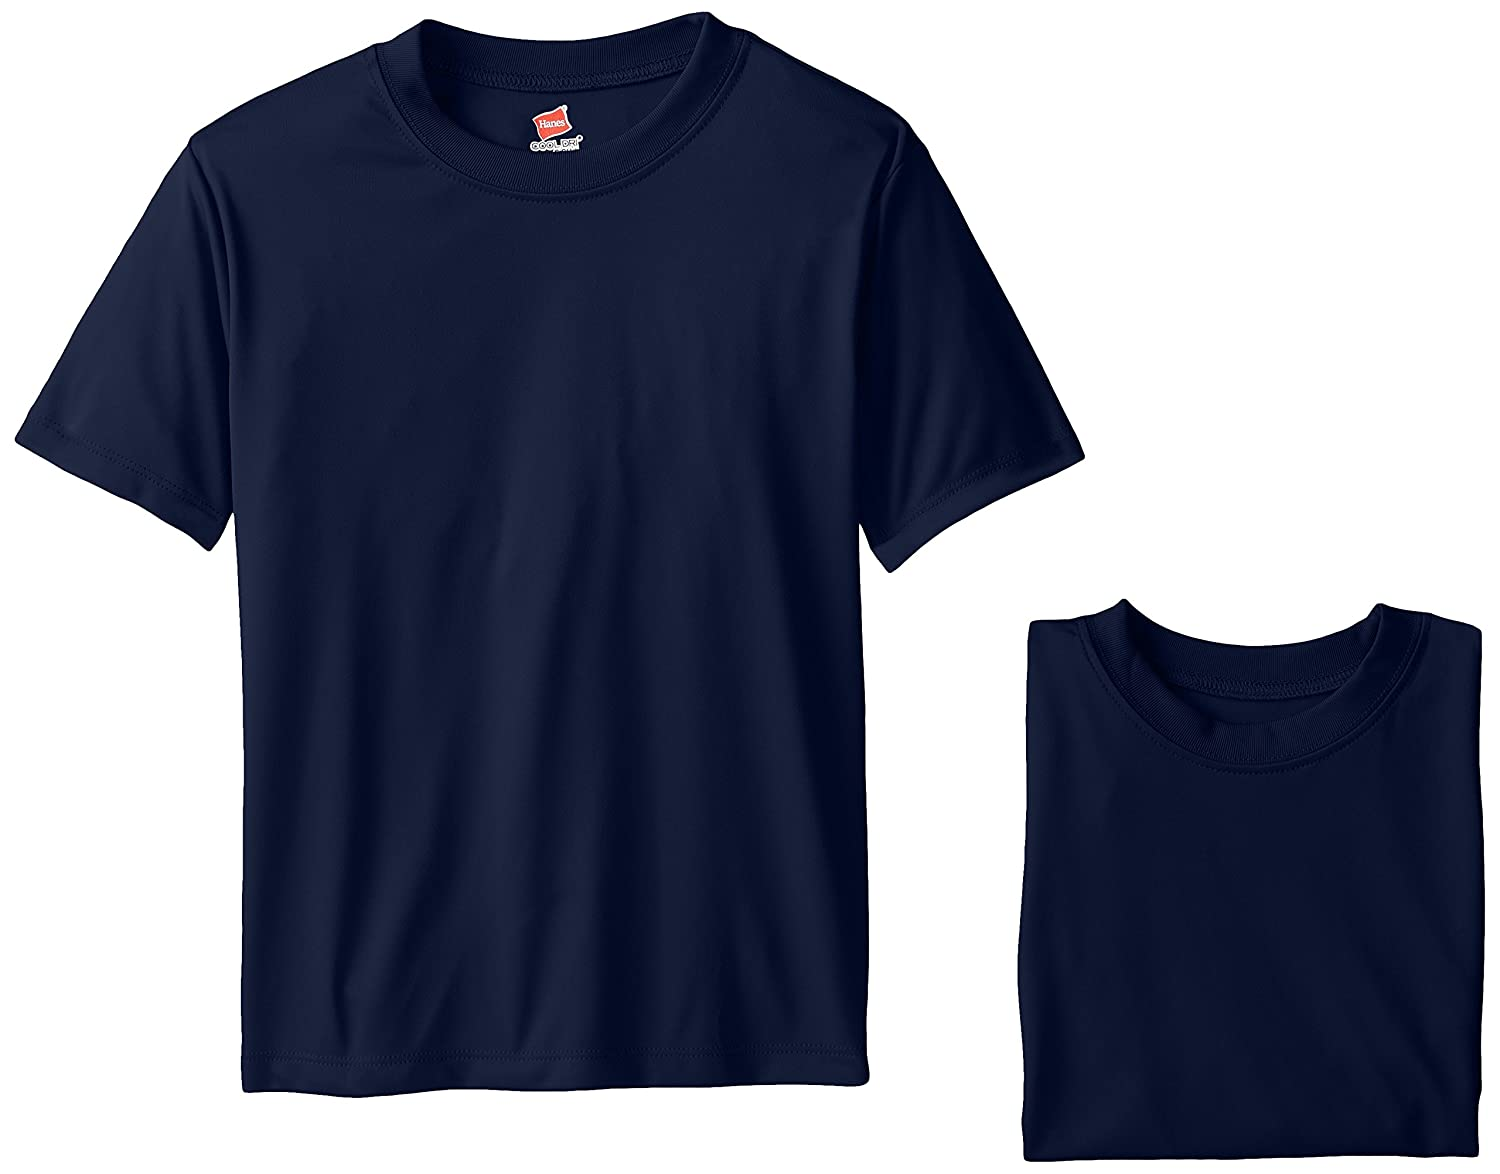 Hanes Big Boys' Cool DRI Performance T-Shirt Pack of 3 Hanes - Boys 8-20 O482Y